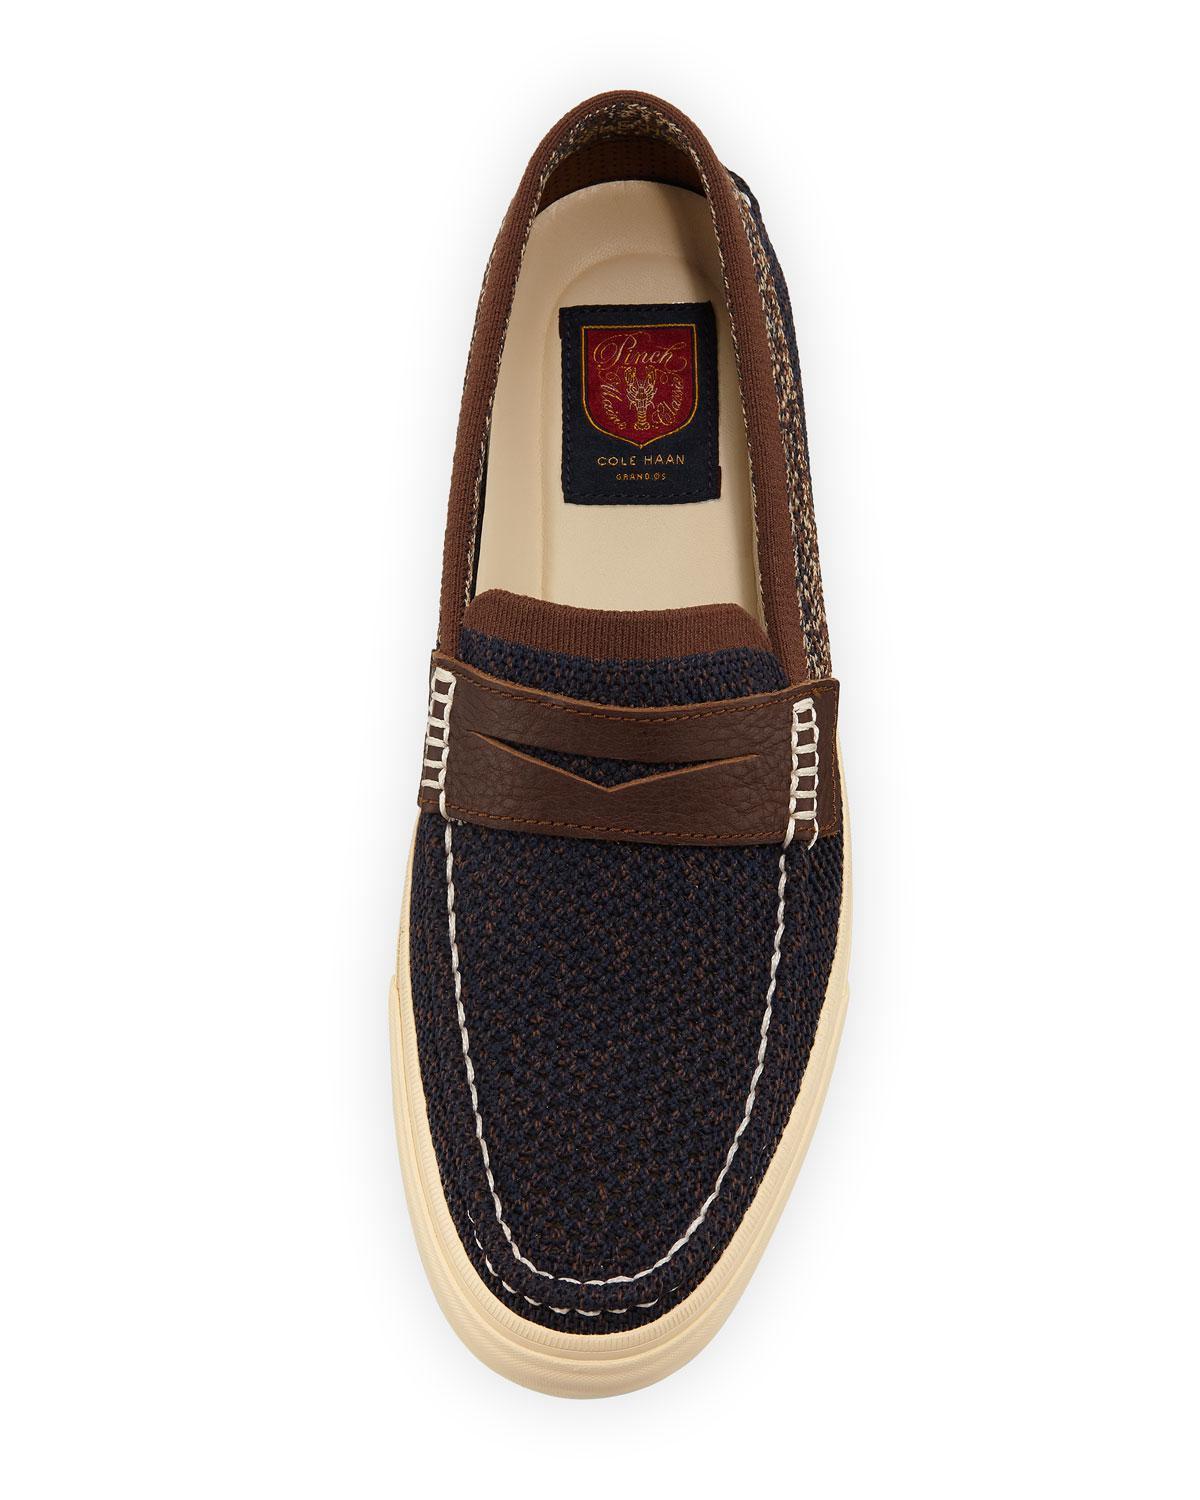 a7642f53f36 Lyst - Cole Haan Men s Pinch Weekender Lx Stitchlite Slip-ons in Blue for  Men